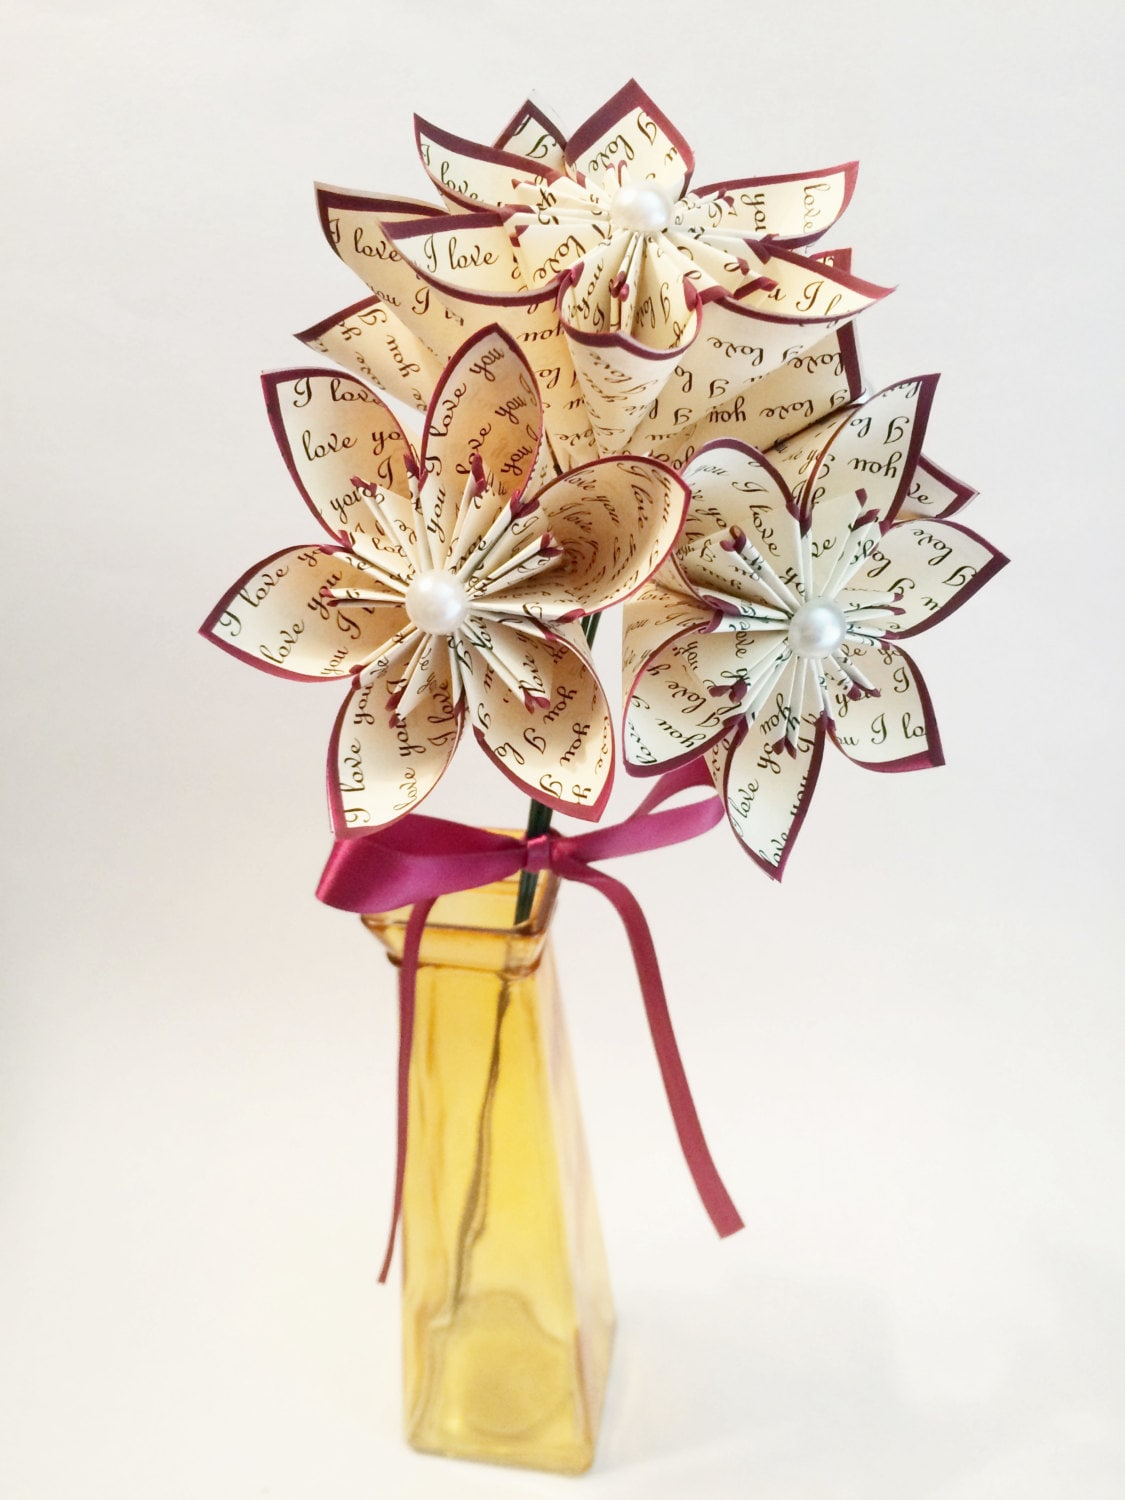 5 I Love You Paper Flowers Ready To Ship Perfect For Her